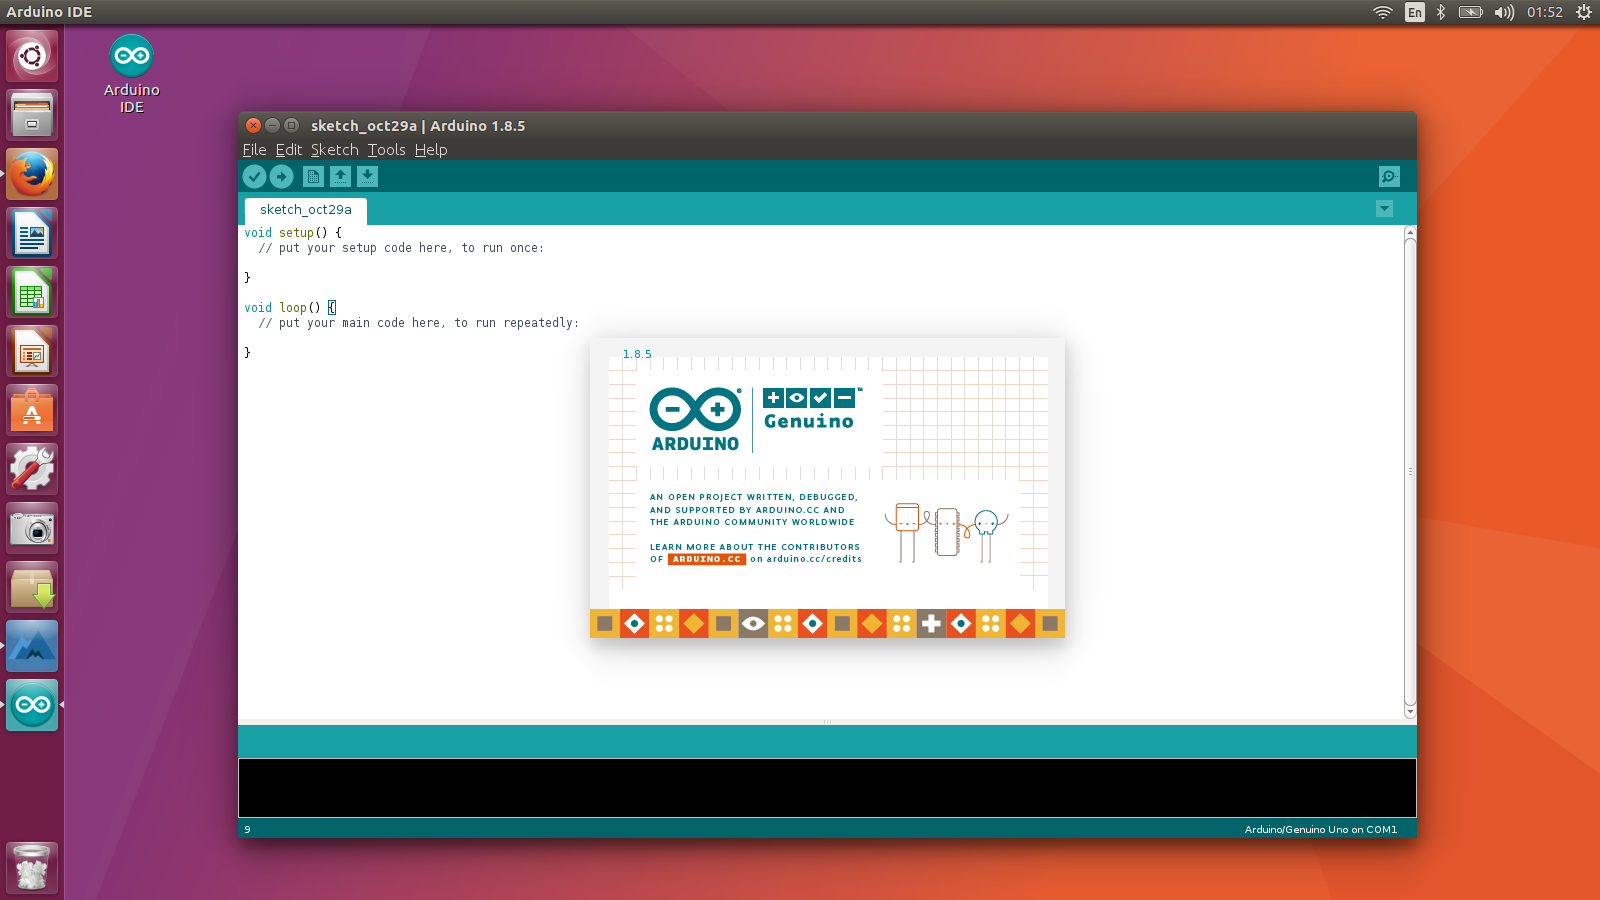 How to install program on Ubuntu: How to Install Arduino IDE